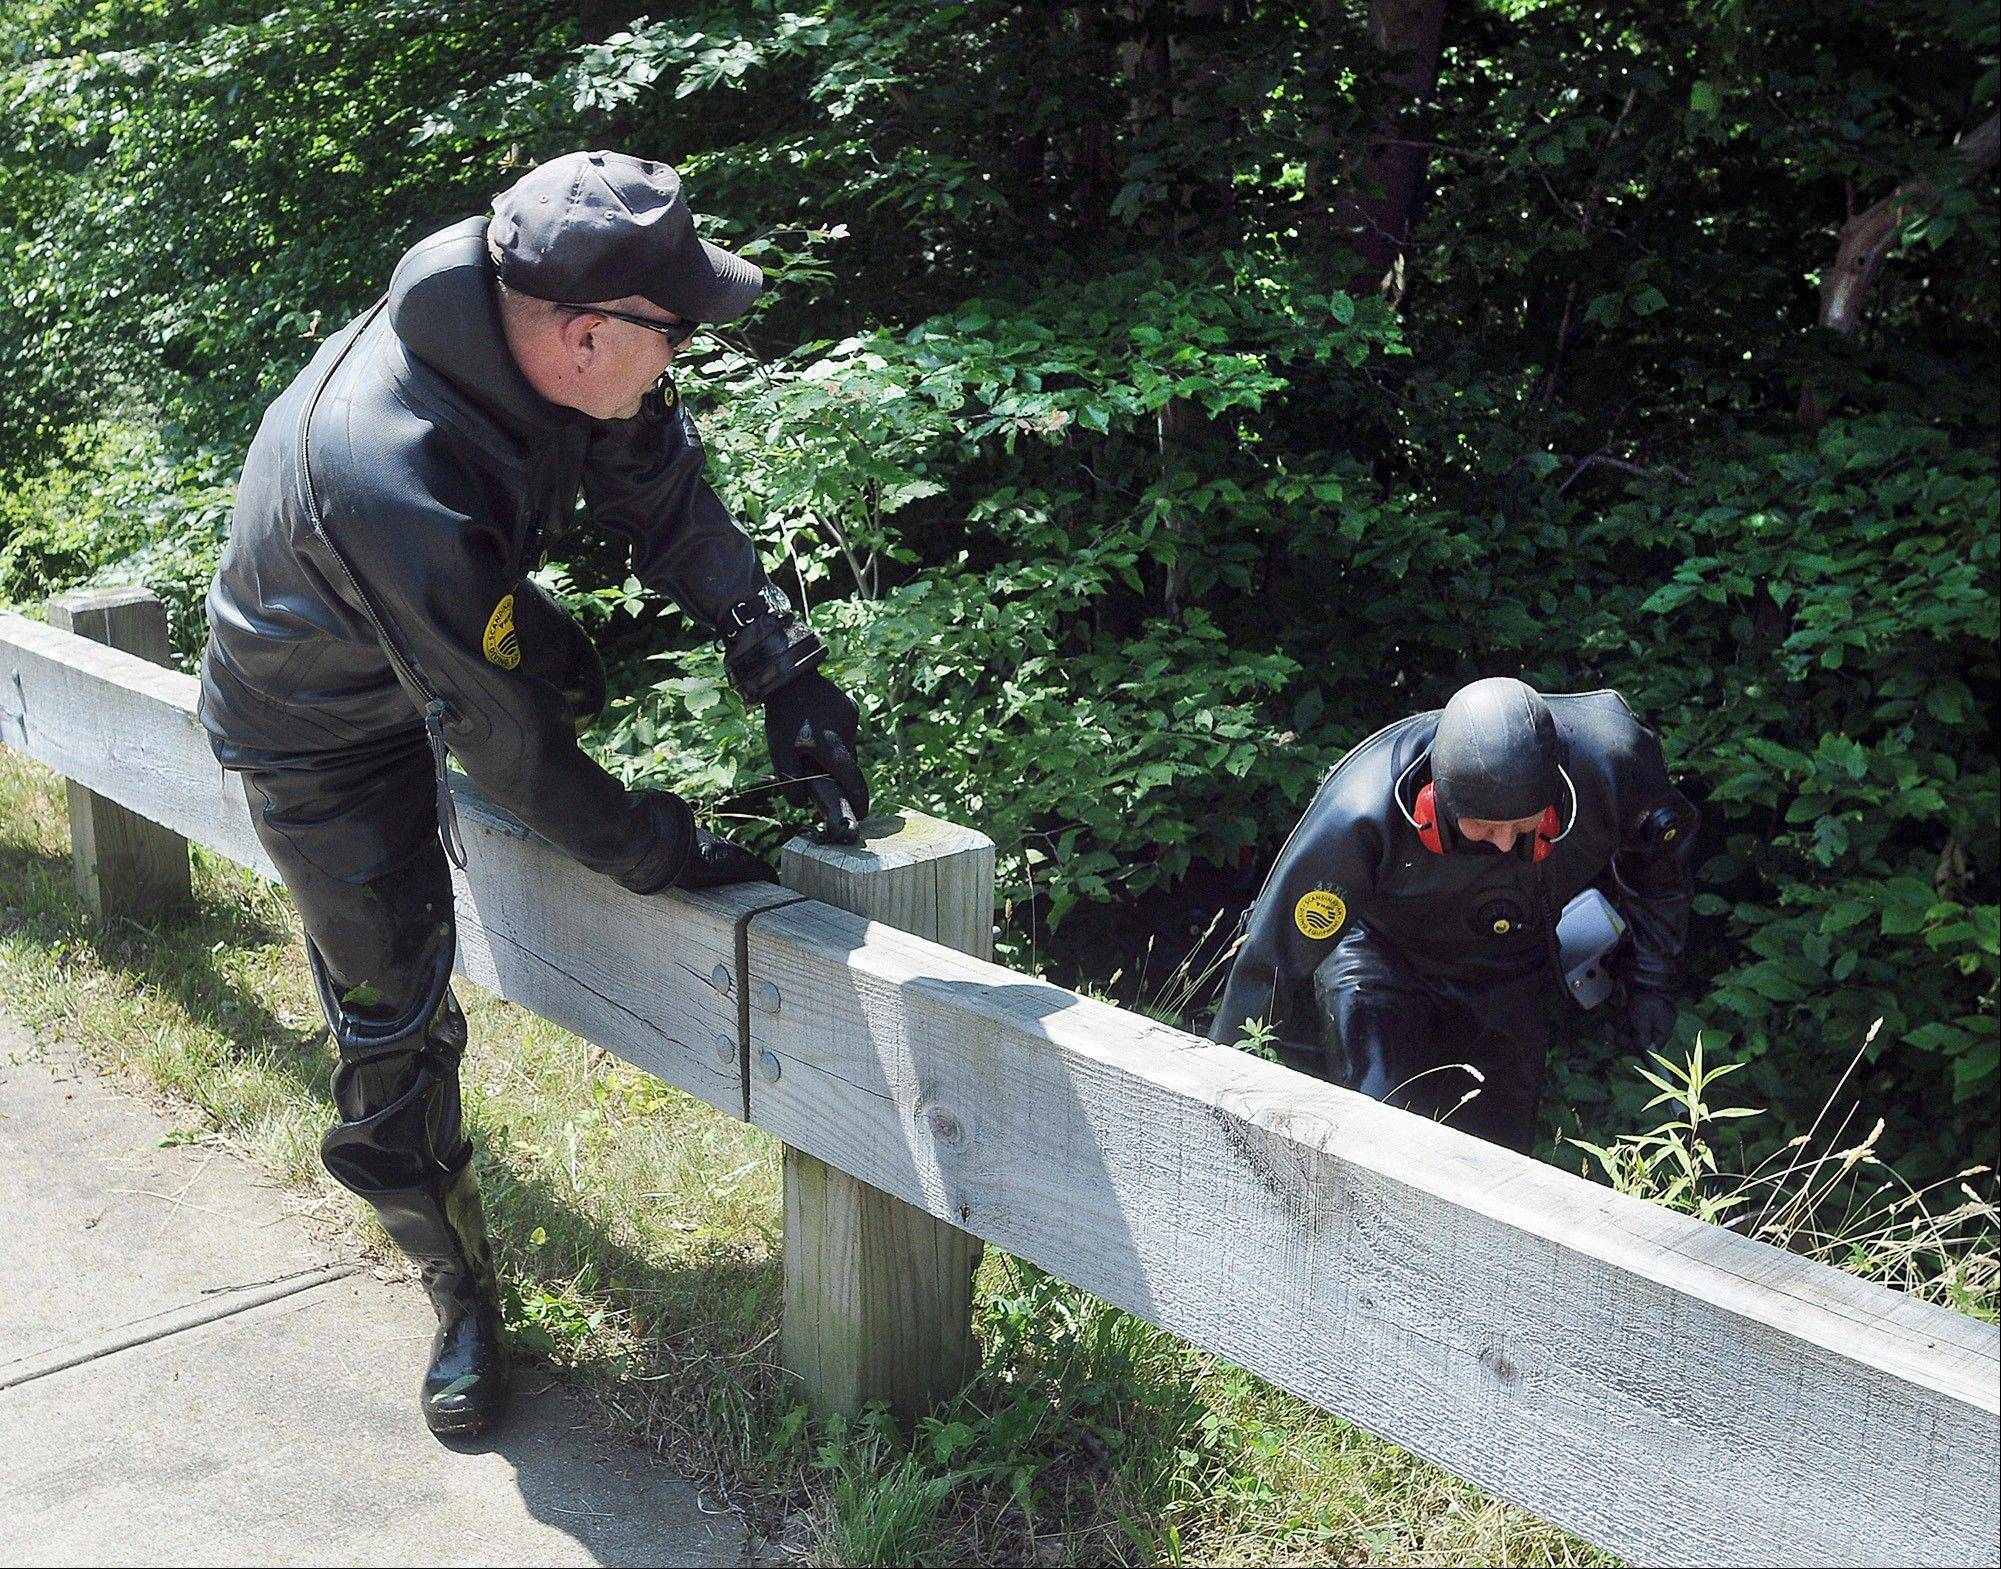 Law enforcement officers wearing wet suits emerge from bushes Monday during a search for evidence along a road near the home of New England Patriots tight end Aaron Hernandez in North Attleborough, Mass. The body of Odin Lloyd, a 27-year-old semipro football player for the Boston Bandits, was found in a nearby industrial park on June 17.